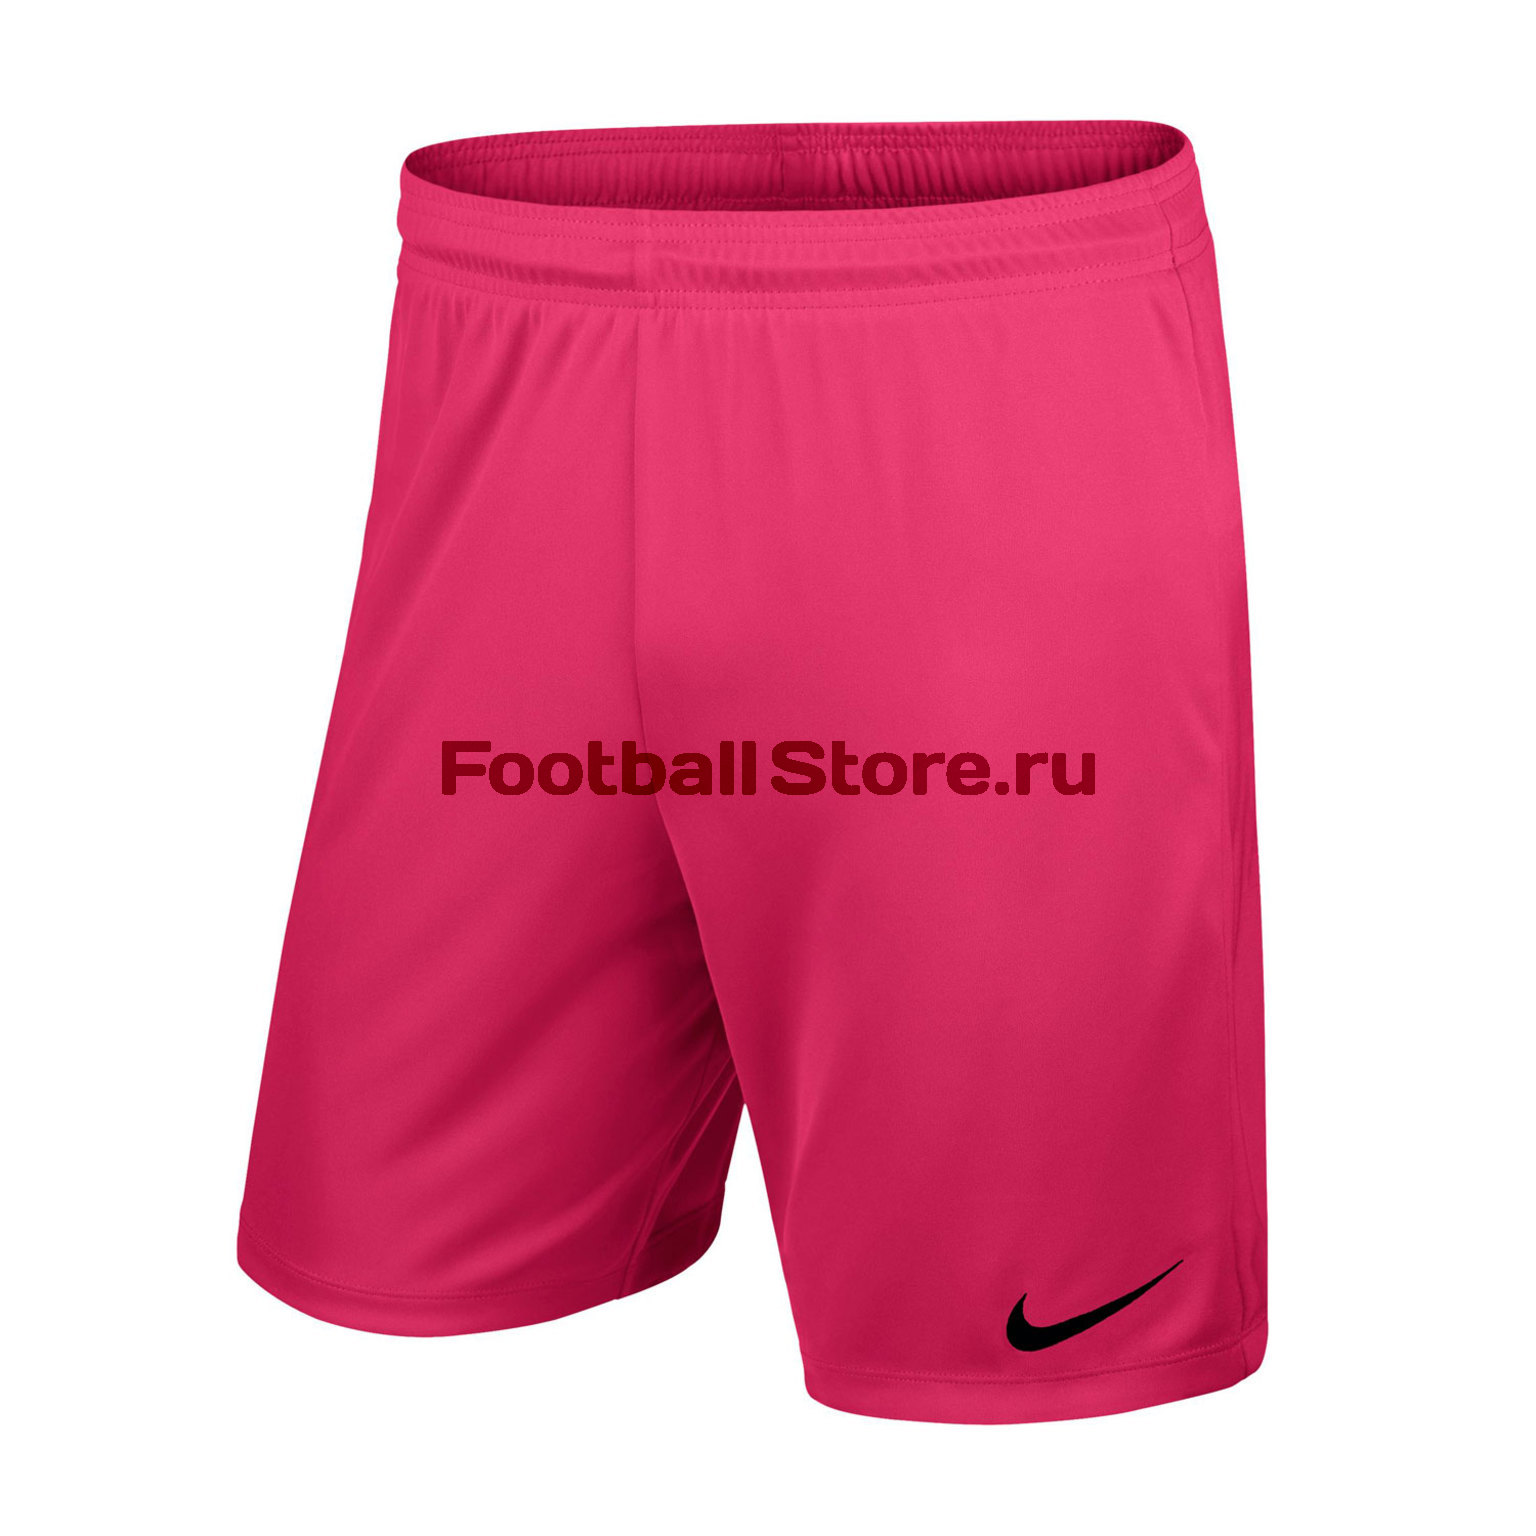 Шорты Nike Park II KNIT Short NB 725887-616